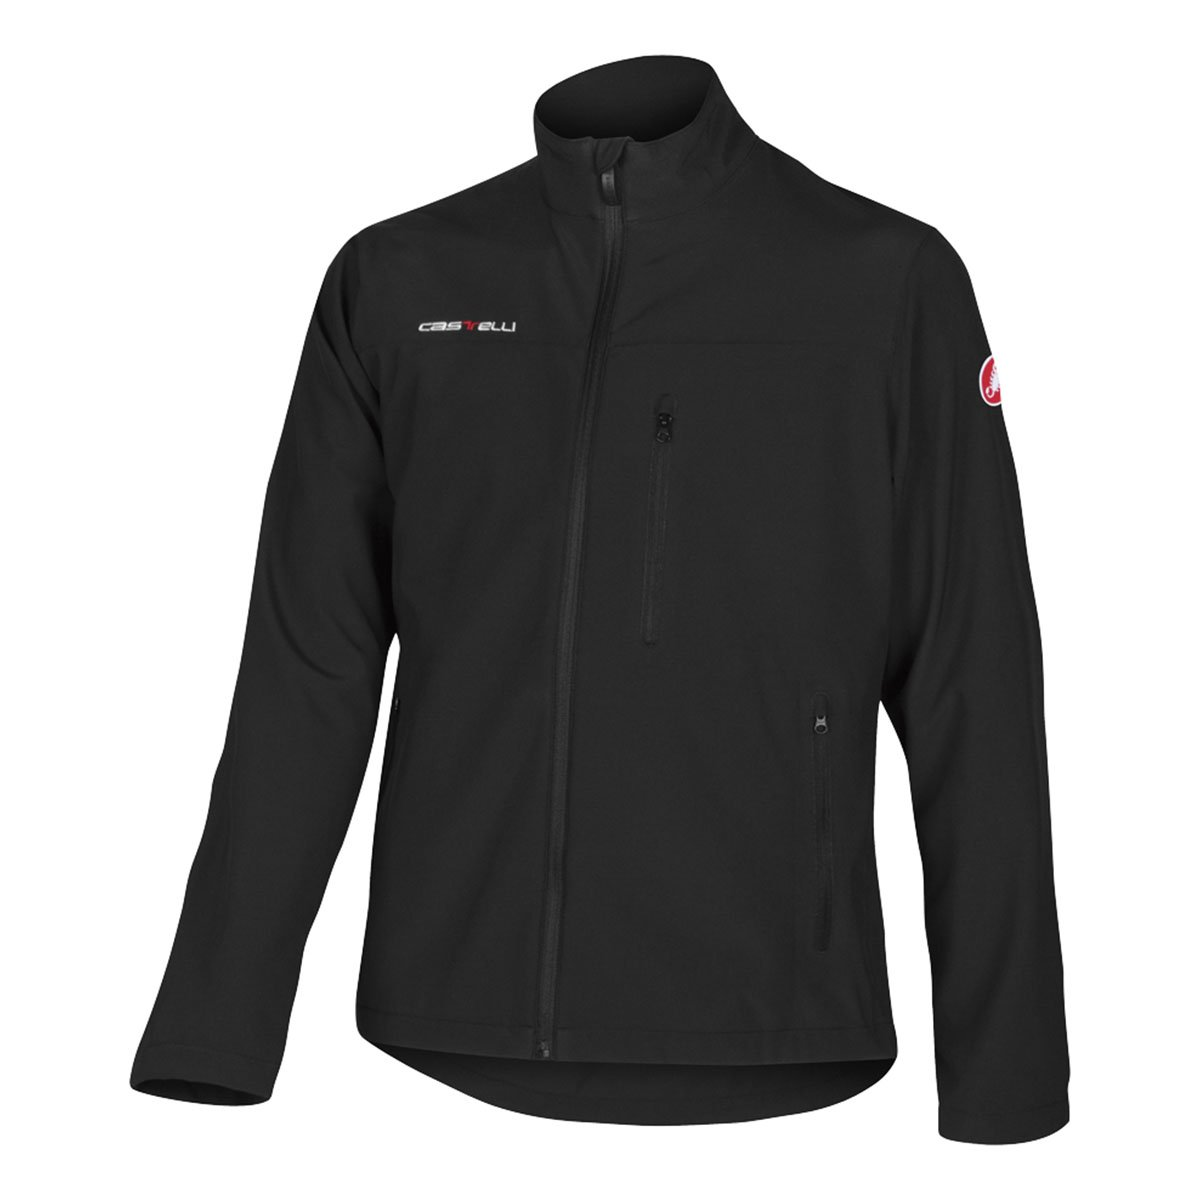 Amazon.com   Castelli 2014 Men s Race Day Casual Jacket - X13090 (Black -  XL)   Athletic Warm Up And Track Jackets   Sports   Outdoors 8819499bc